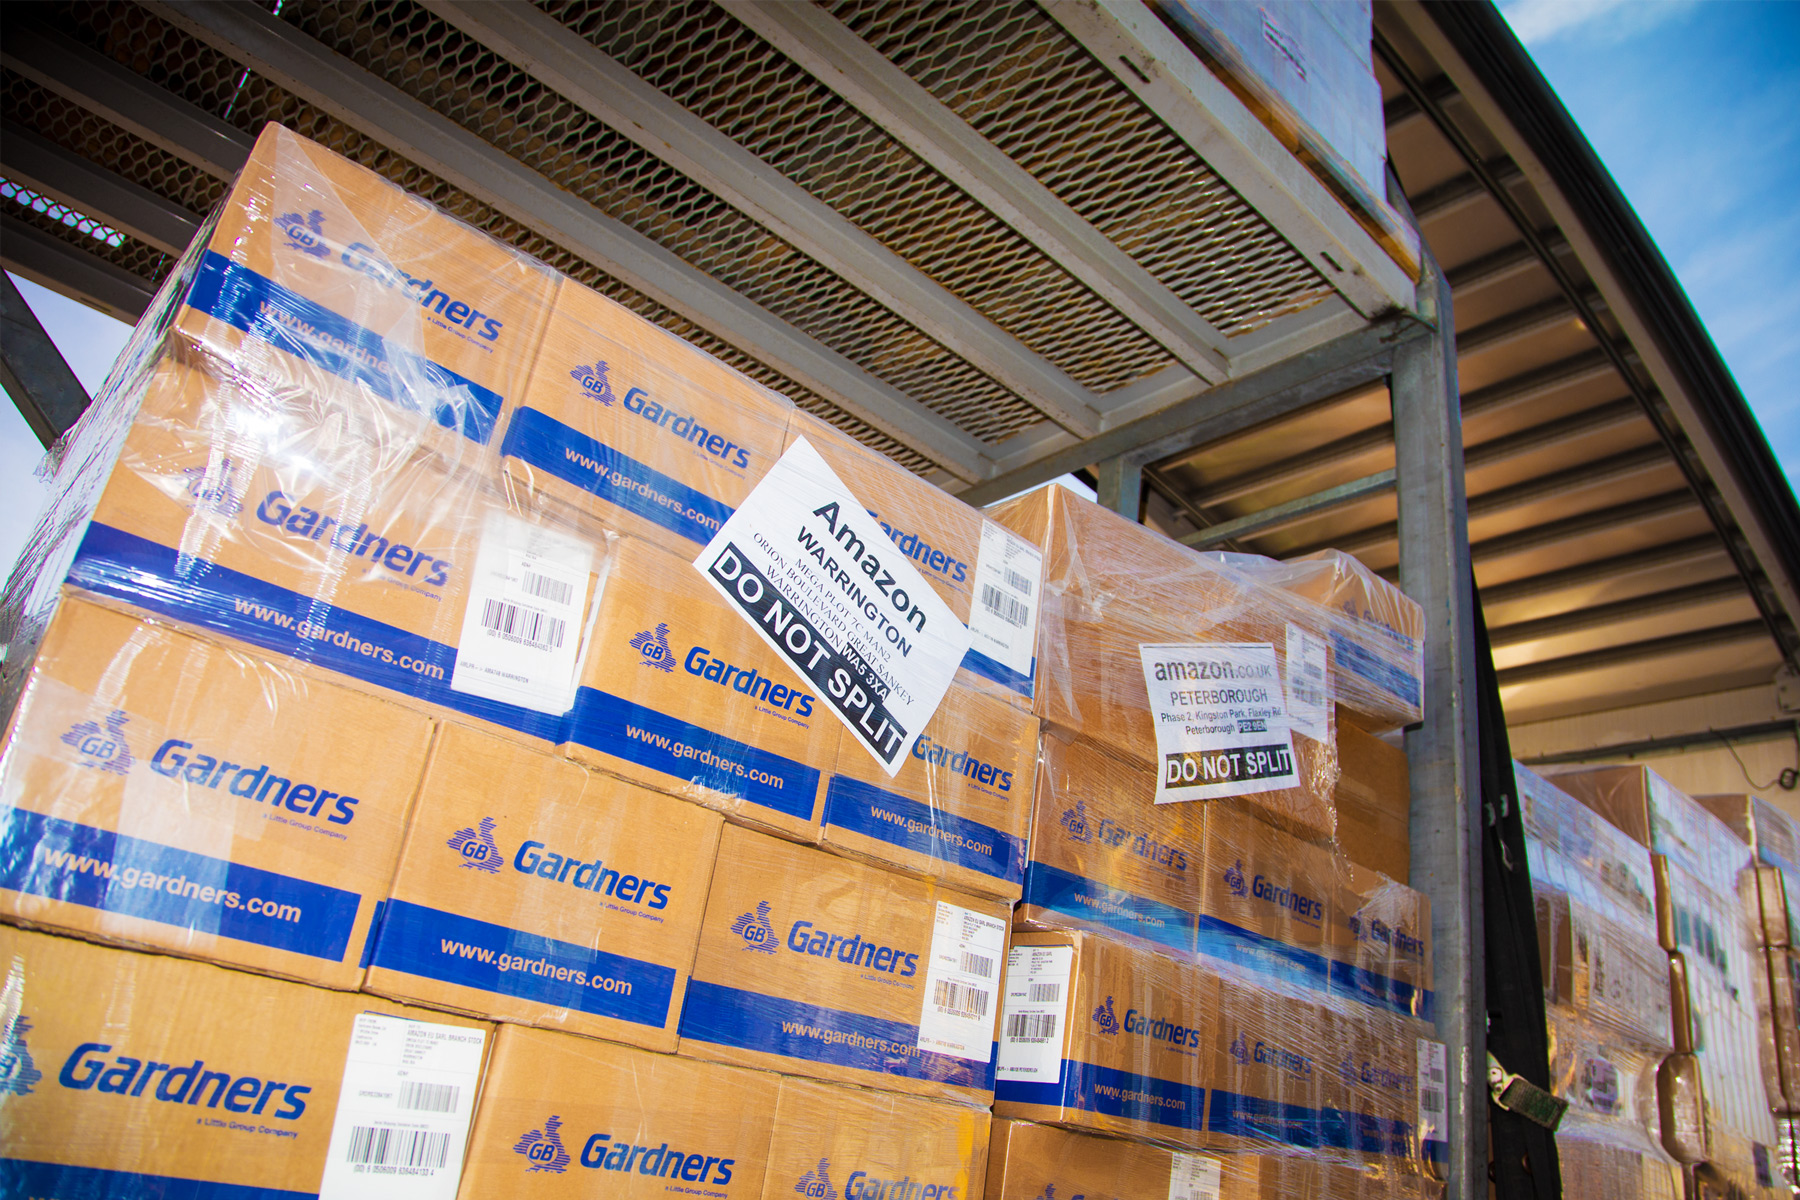 Amazon boxes getting packed onto the Tomsetts lorry ready for distribution to the UK and Europe.